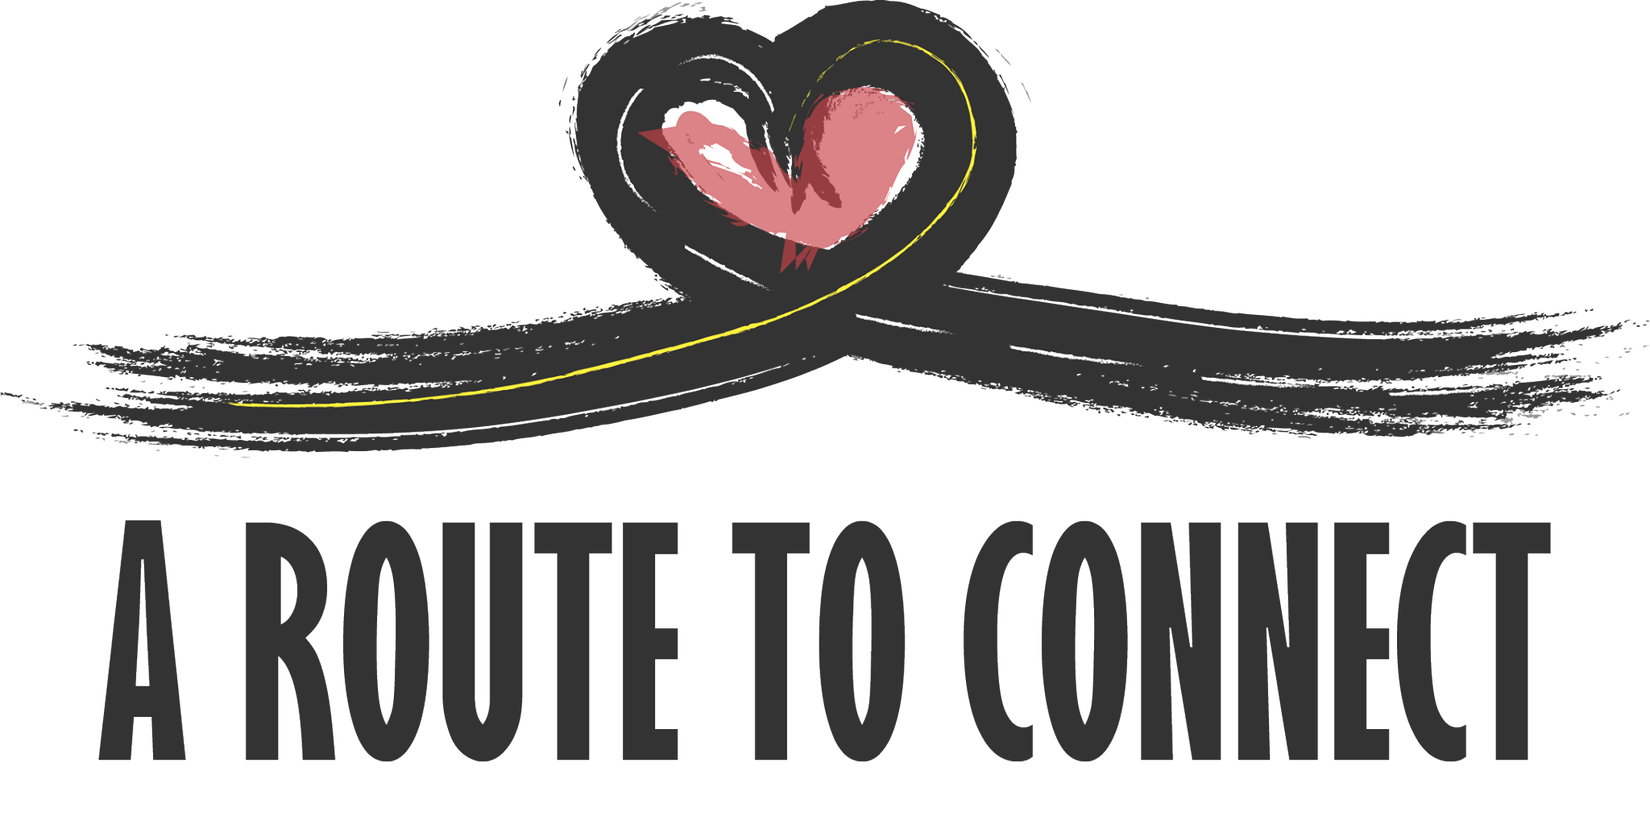 Volunteering clipart farewell. A route to connect